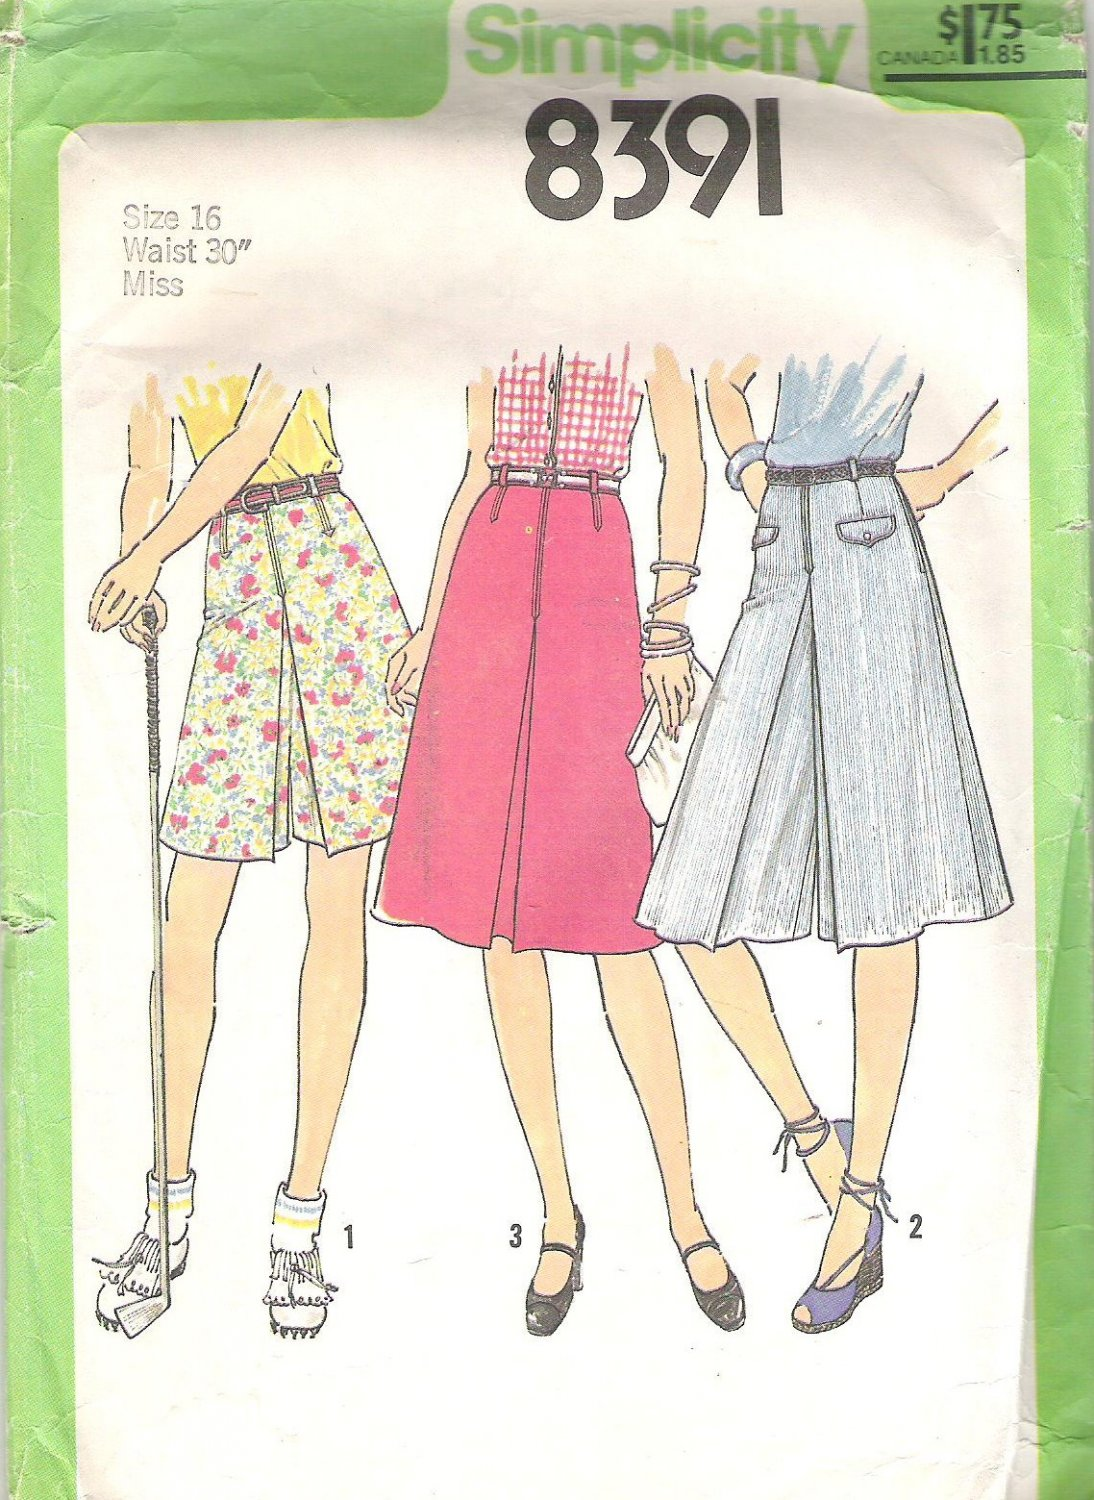 1978 Simplicity 8391 Pattern Vintage Skort Culottes in 2 Lenghts  and Skirt  Size 16  Cut